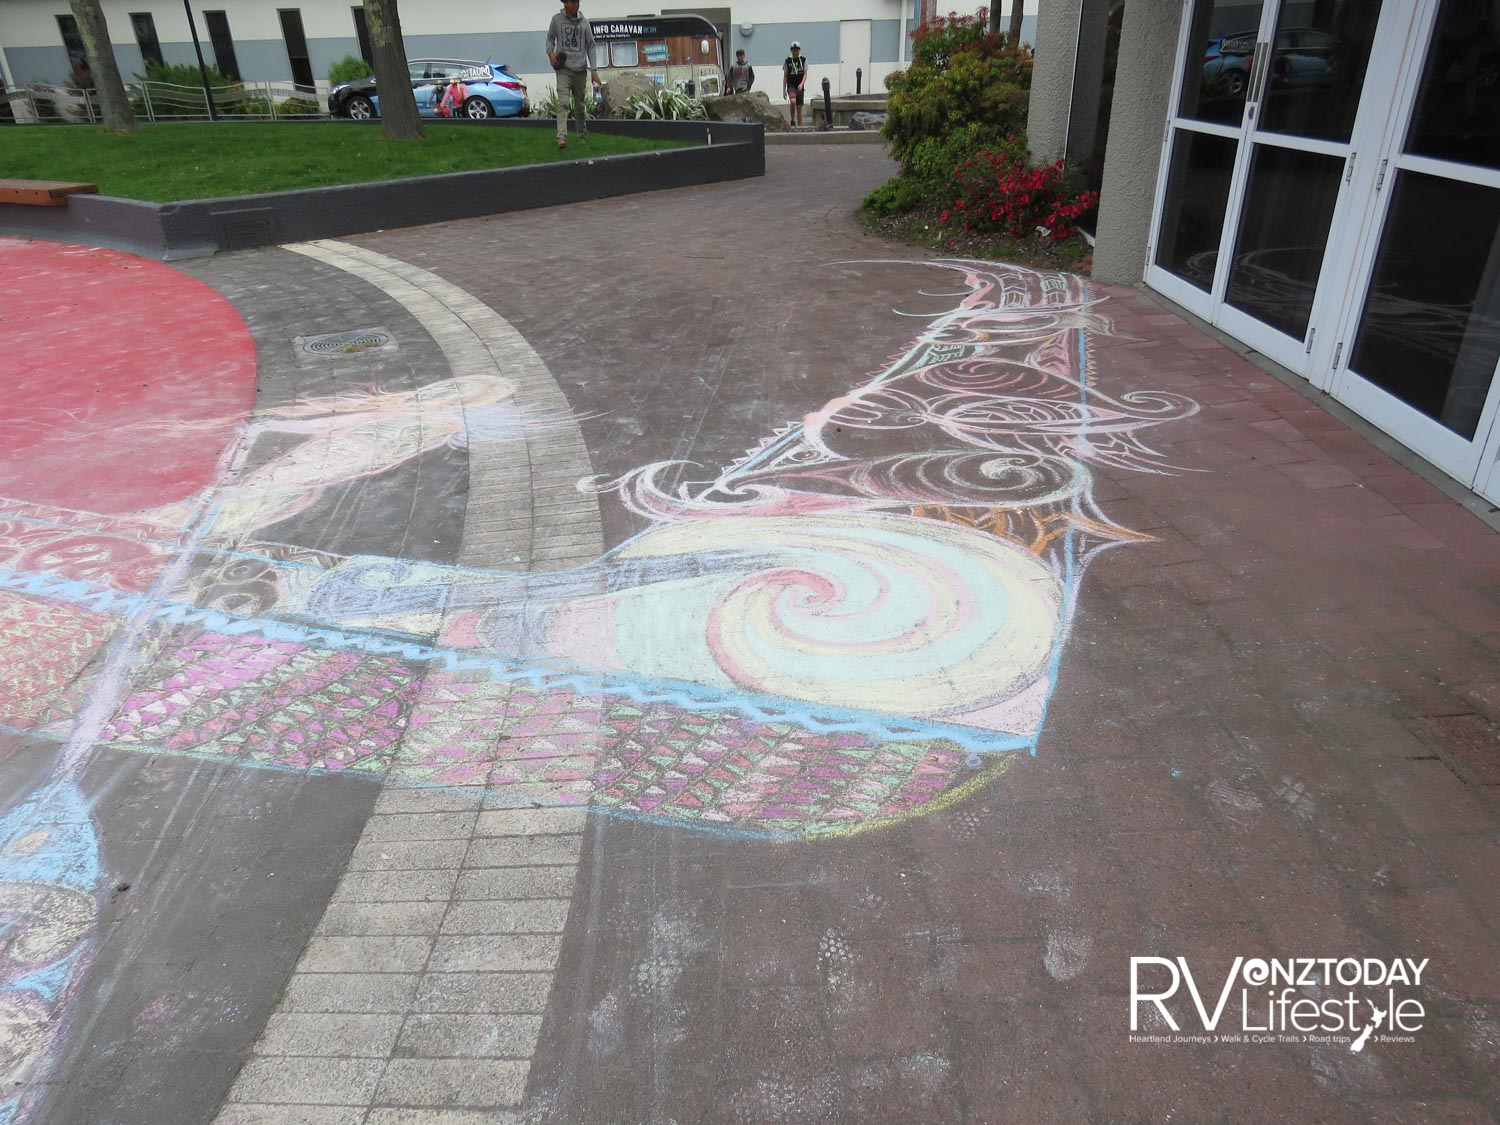 Chalk drawings celebrate 40 years since the Mine Bay rock carvings were made